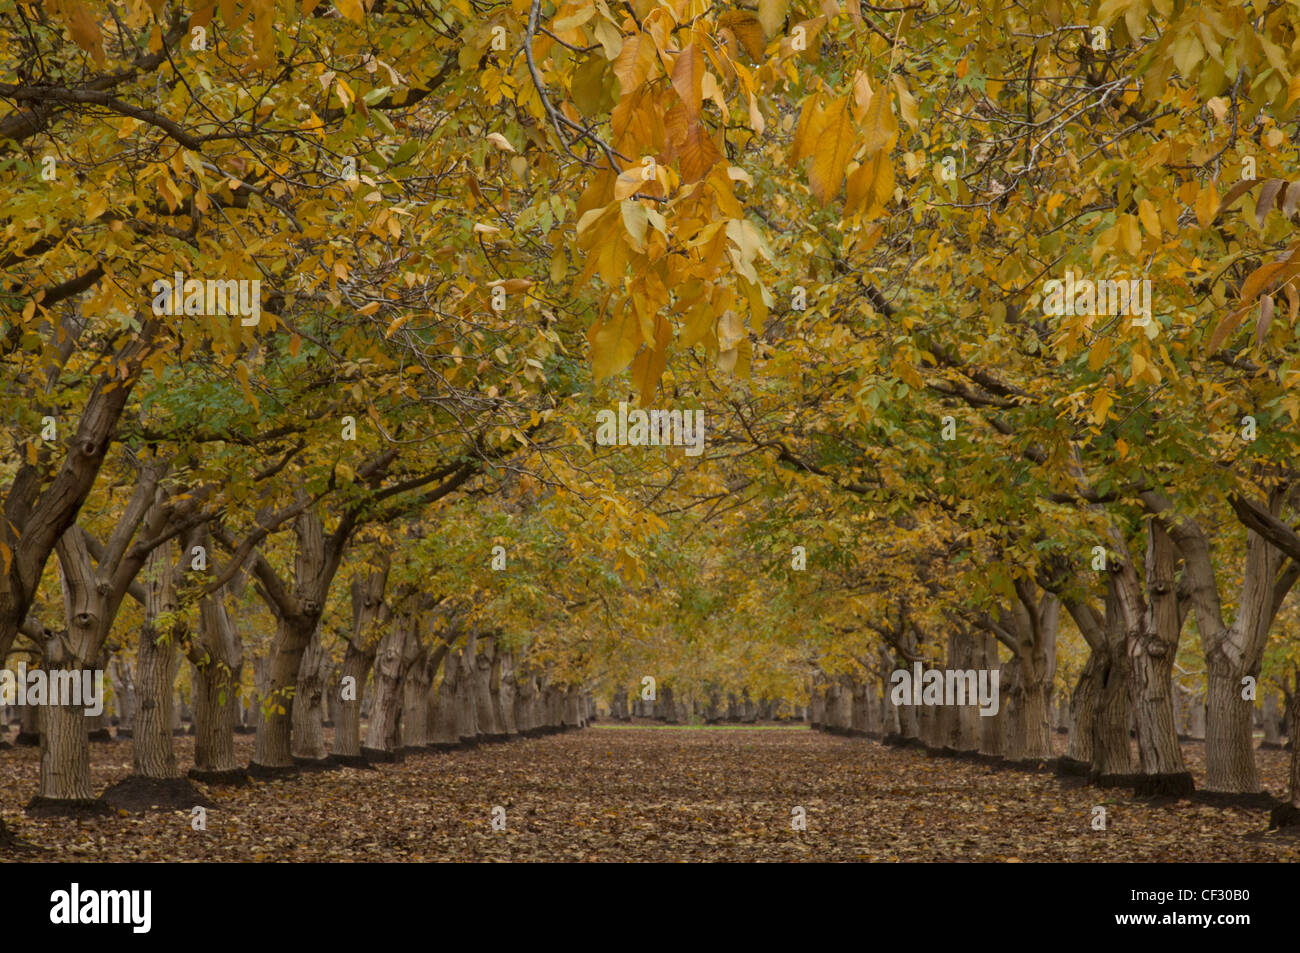 Northern California Walnut Orchard in Autumn after harvest of the nut crop. - Stock Image